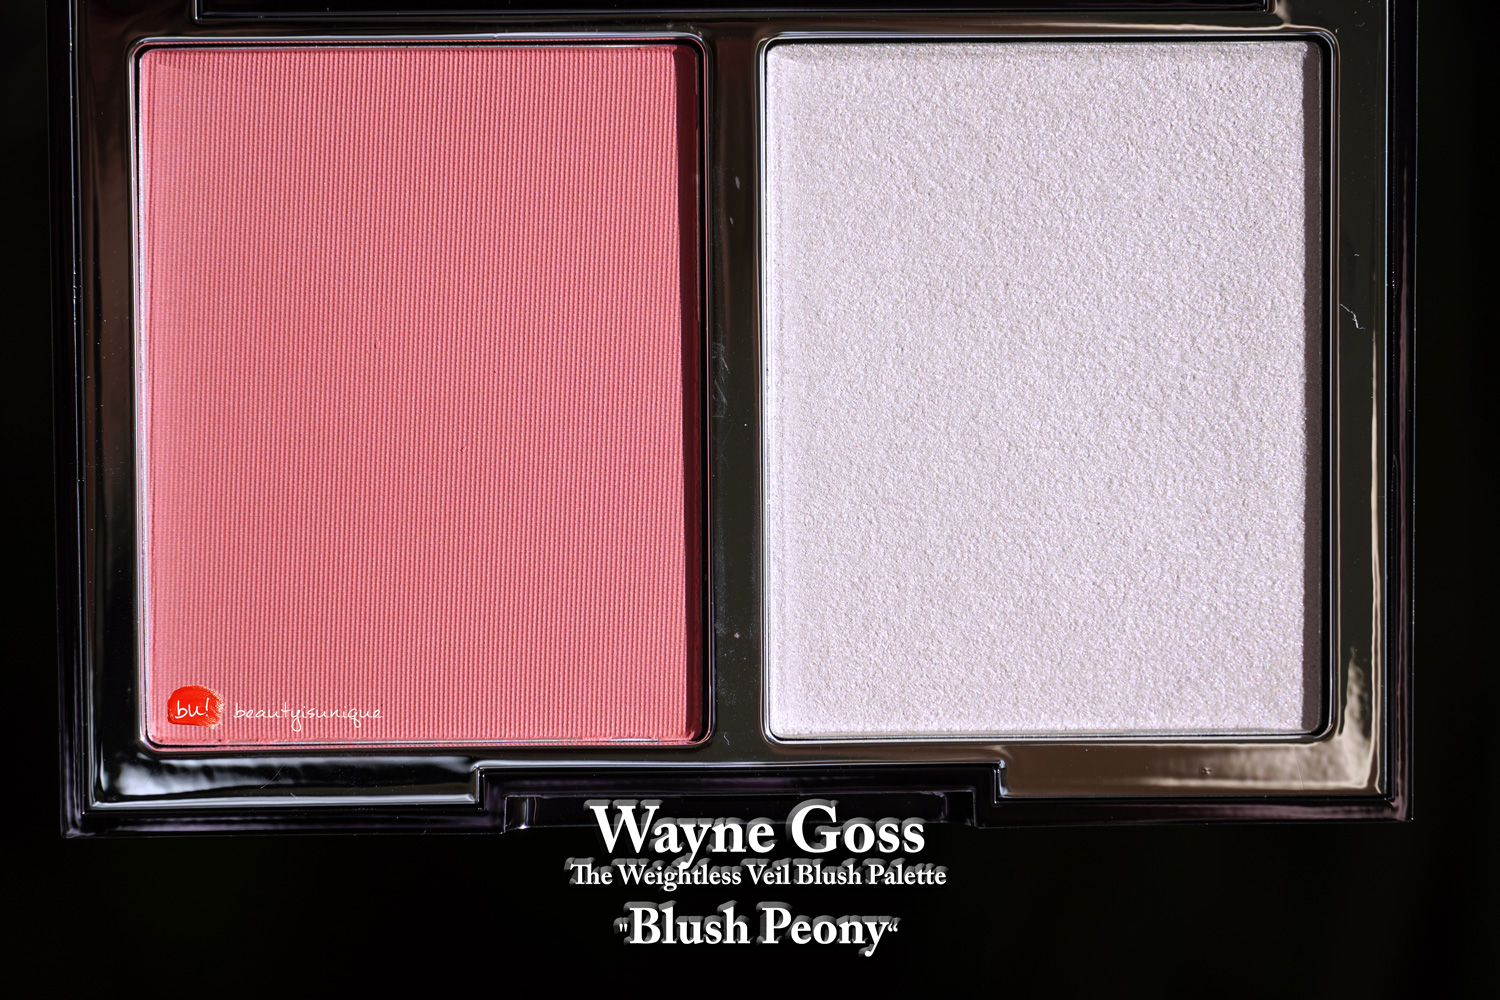 Wayne-goss-the-weightless-veil-blush-peony